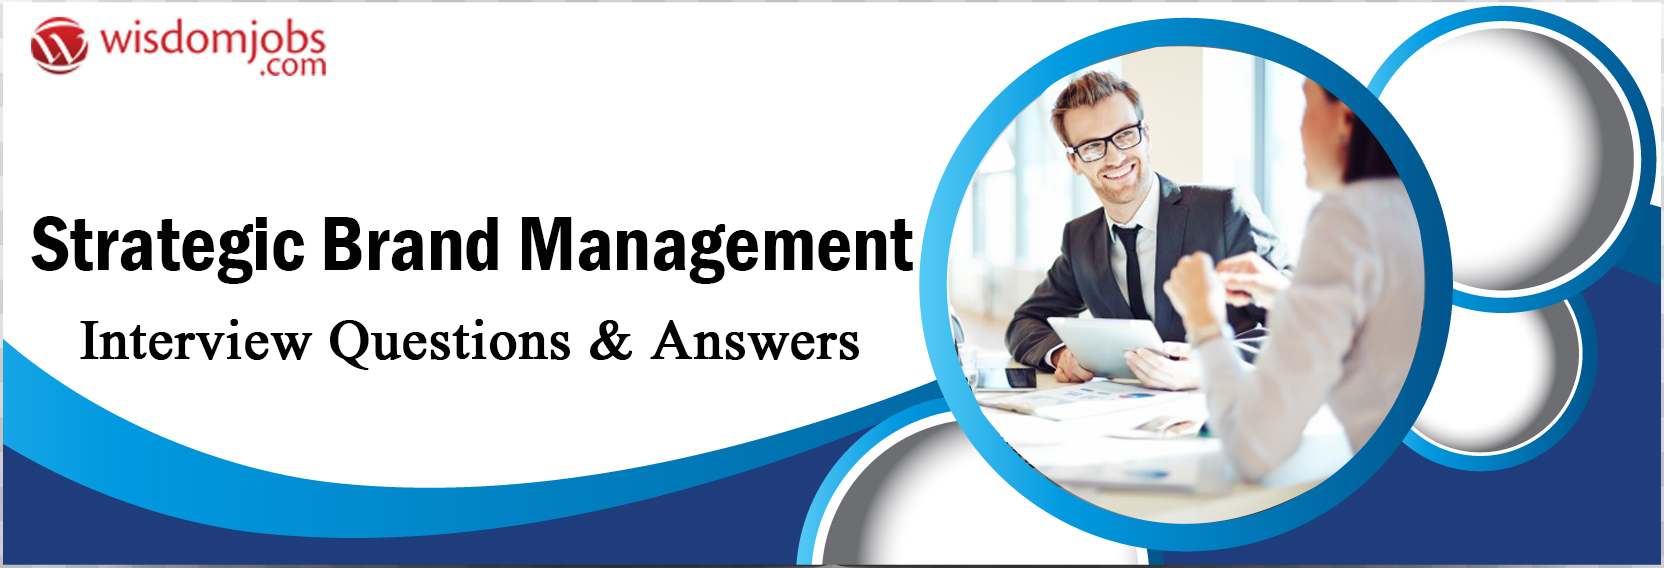 Strategic Brand Management Interview Questions & Answers